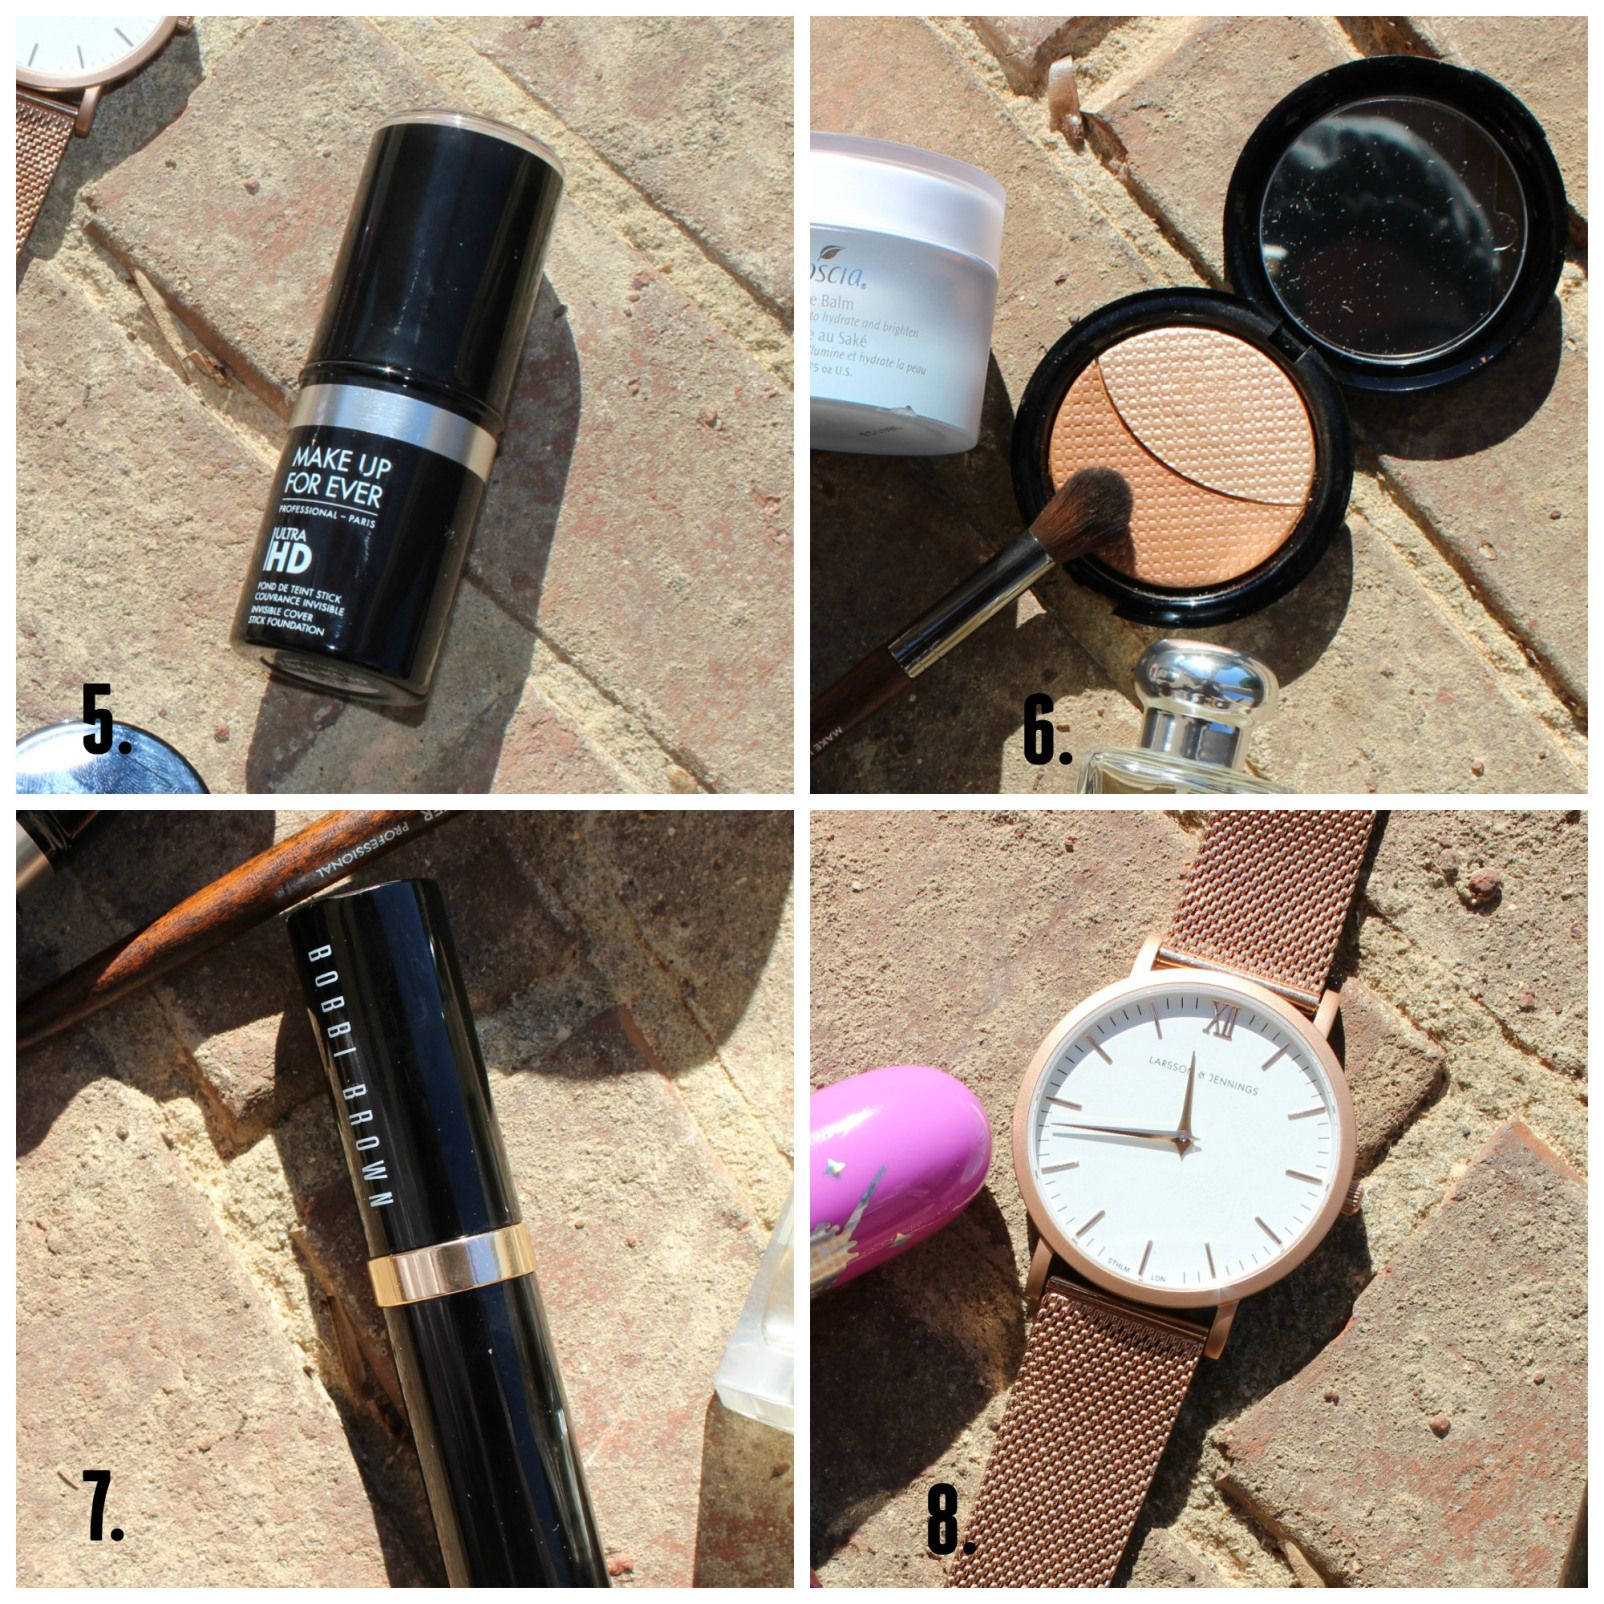 Make Up For Ever Ultra Hd stick, Make Up For Ever pro